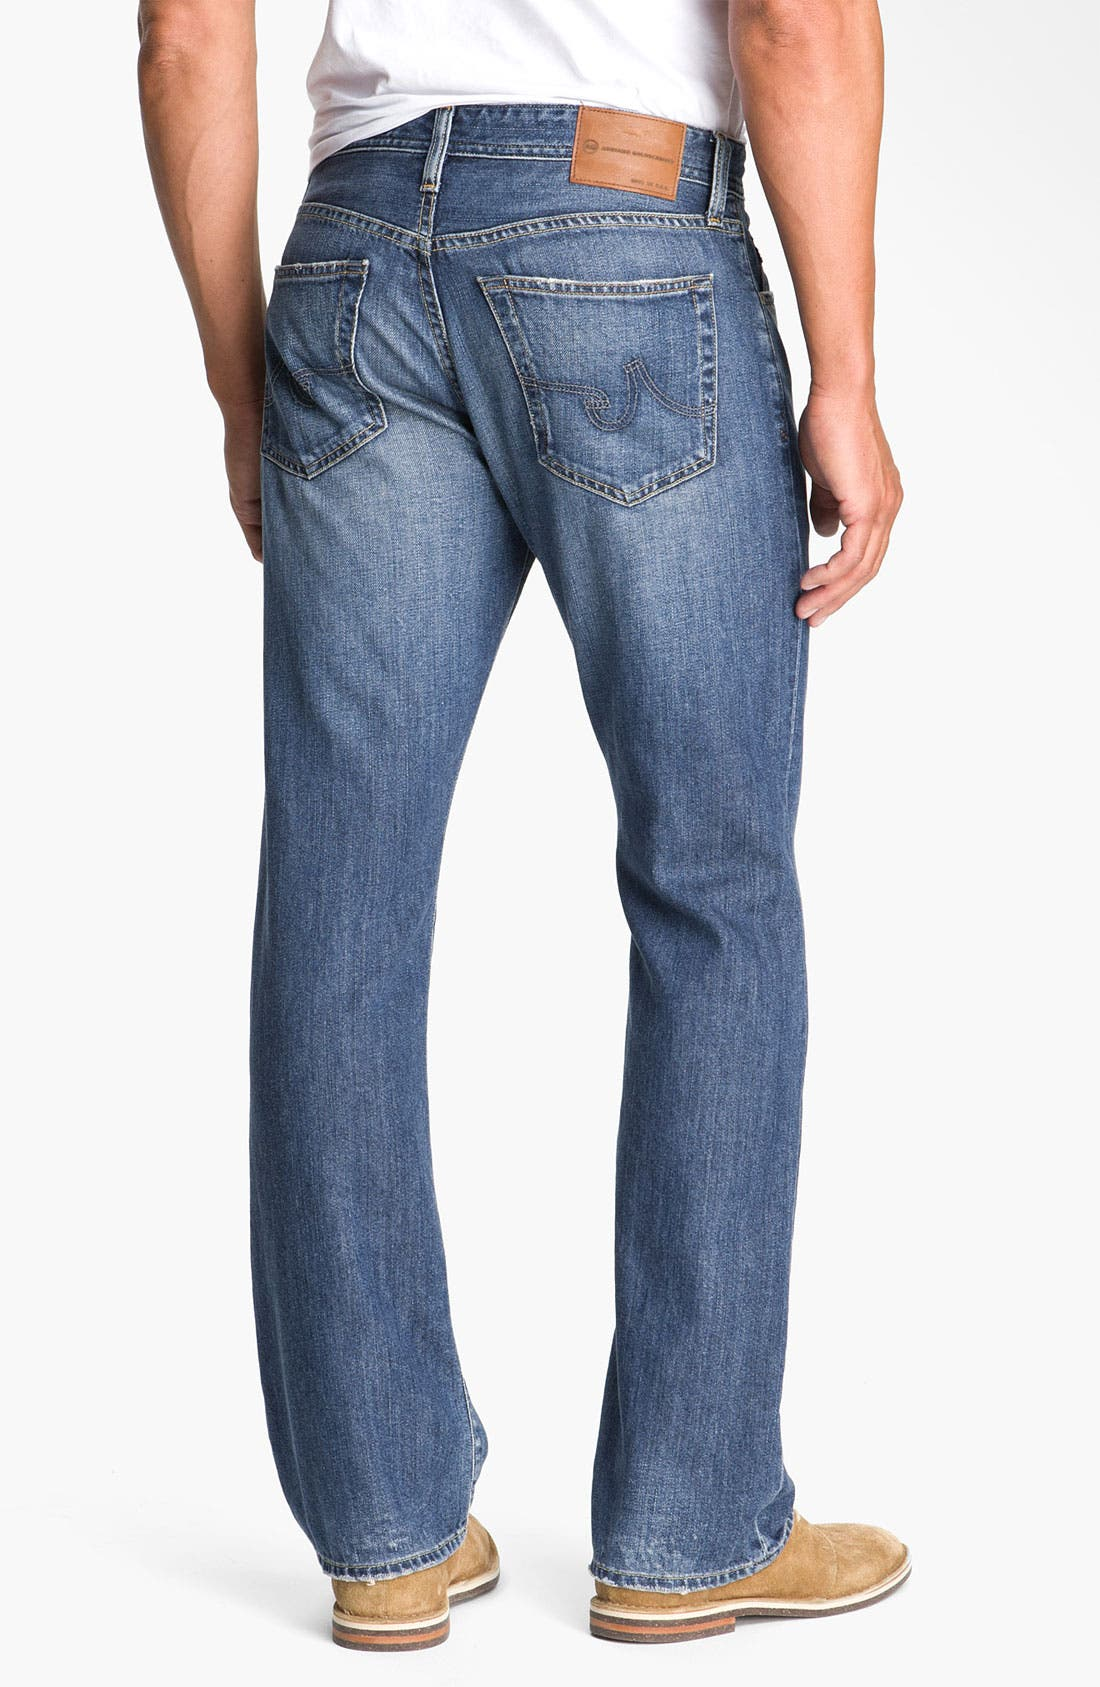 Alternate Image 1 Selected - AG 'Protégé' Straight Leg Jeans (Tate)